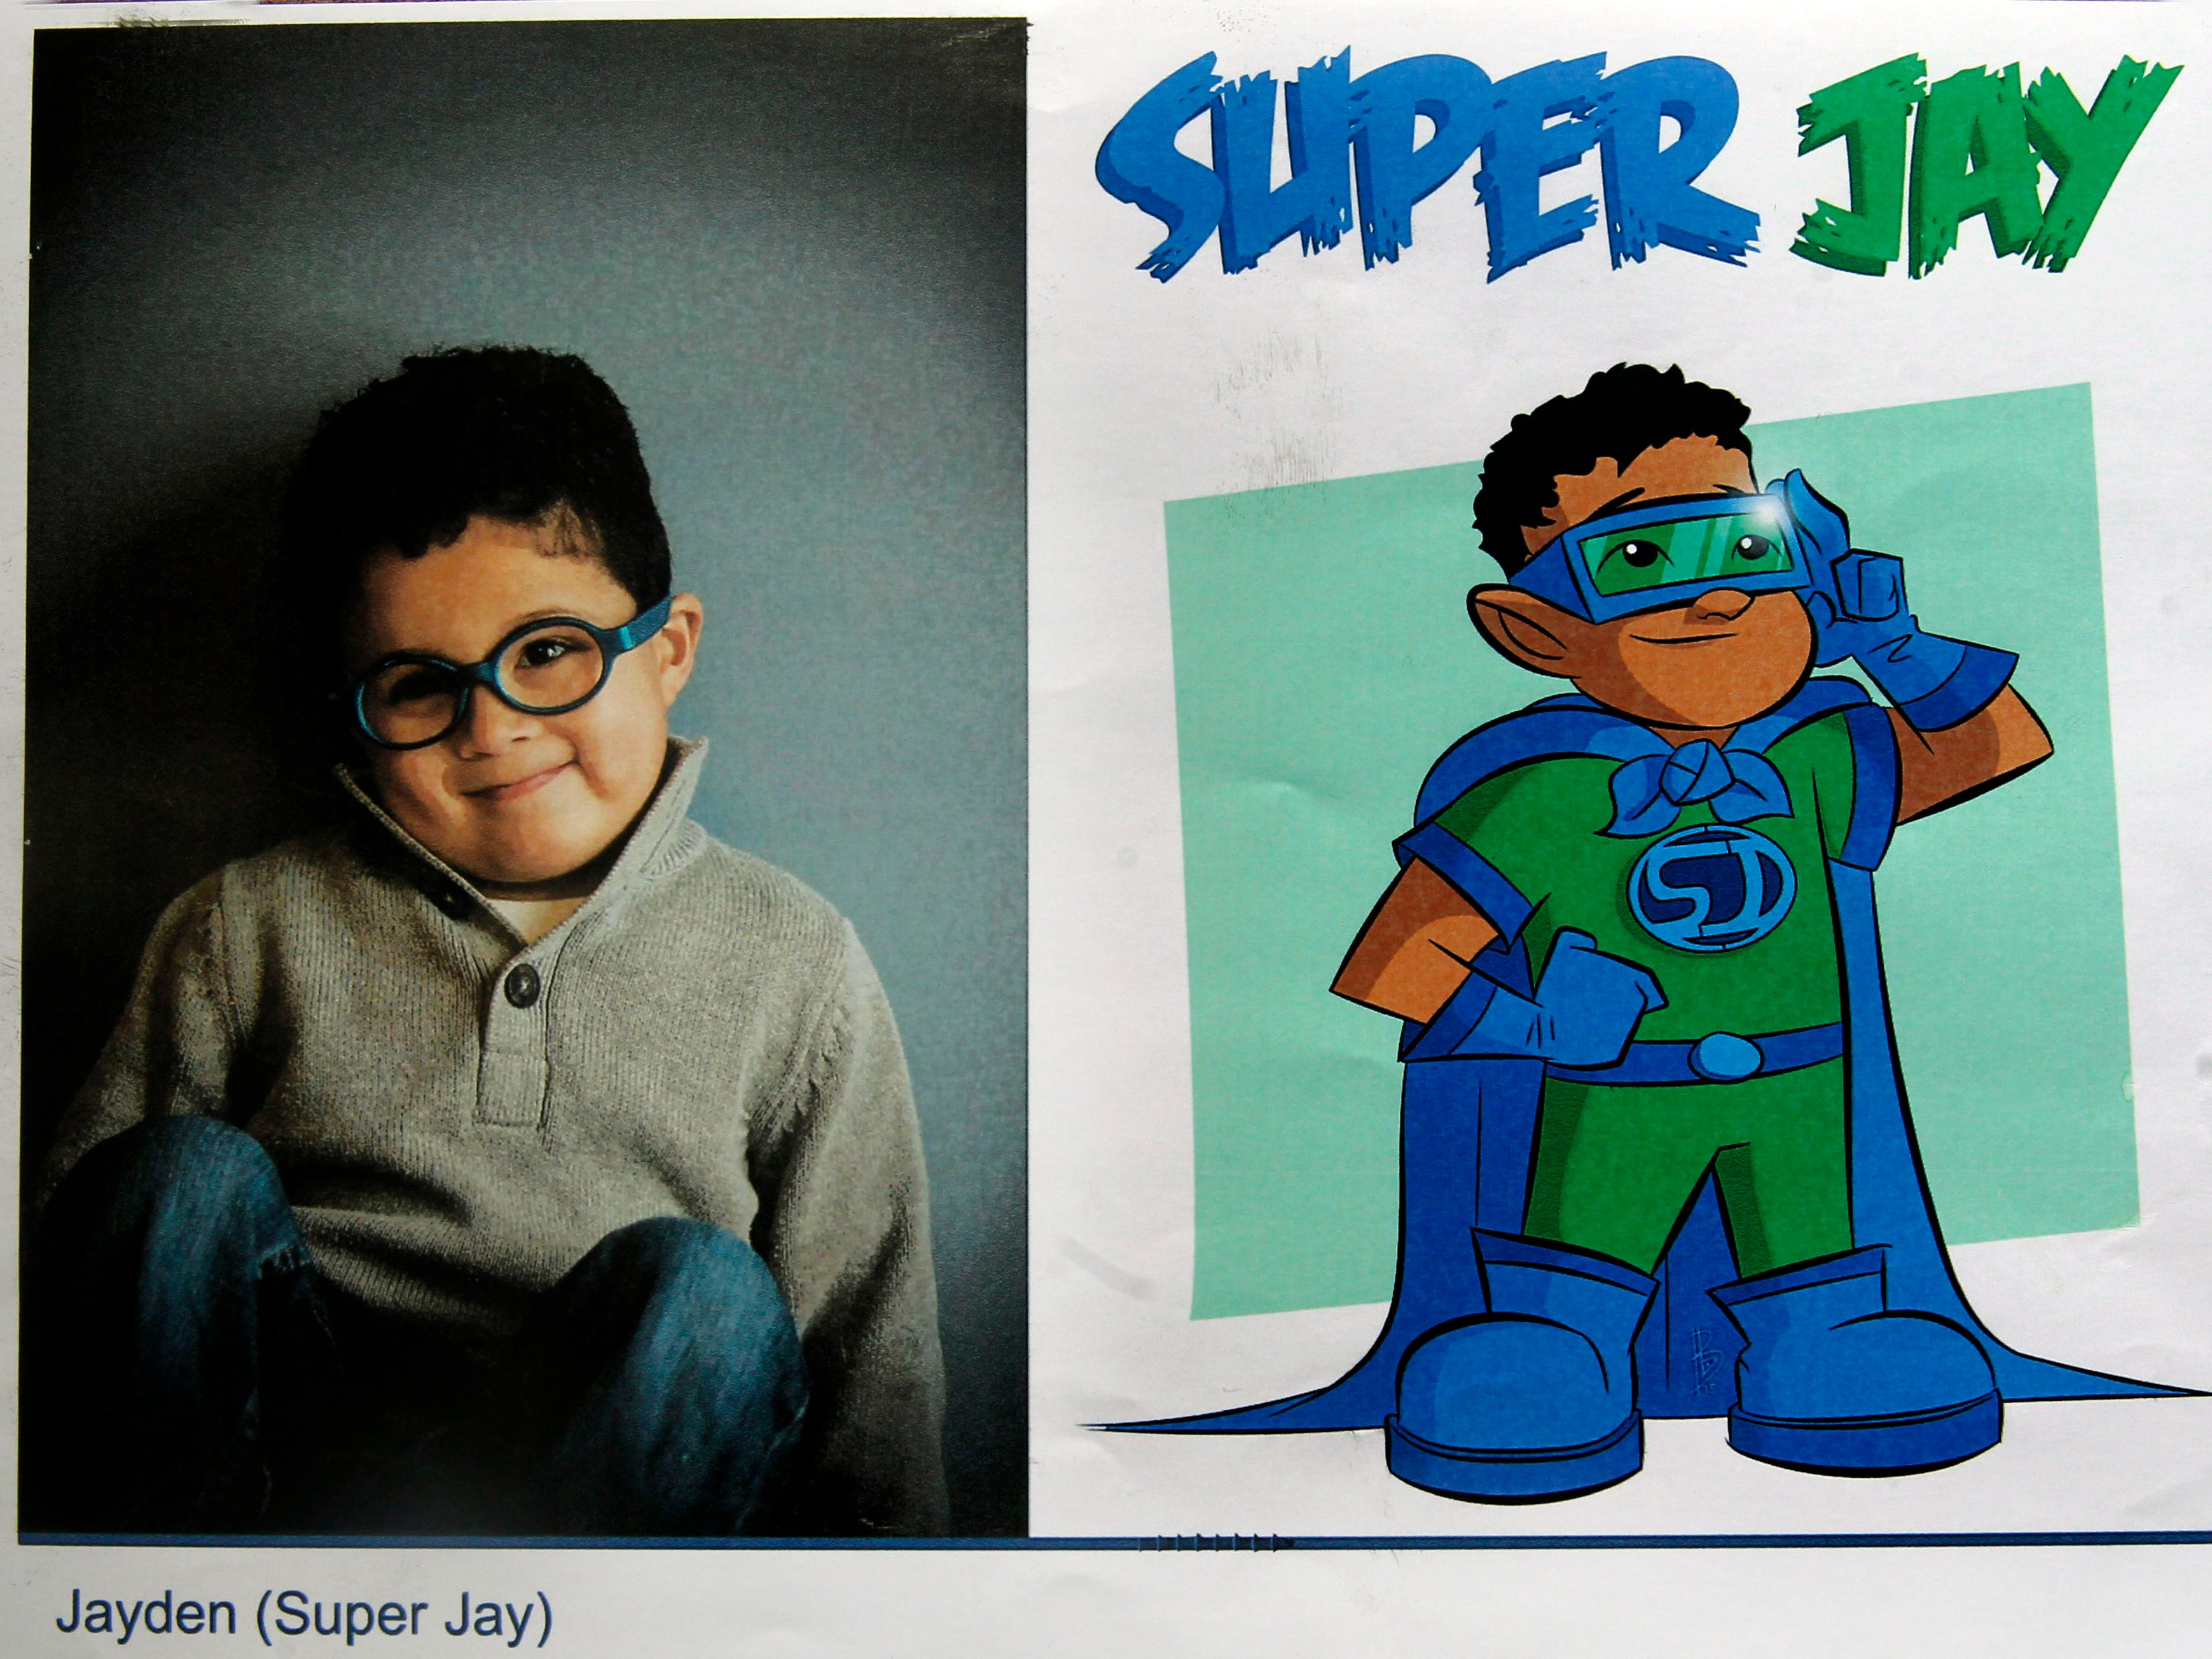 Super Jay is a superhero identity created by Bryan Dyer, owner of You Are the Hero.